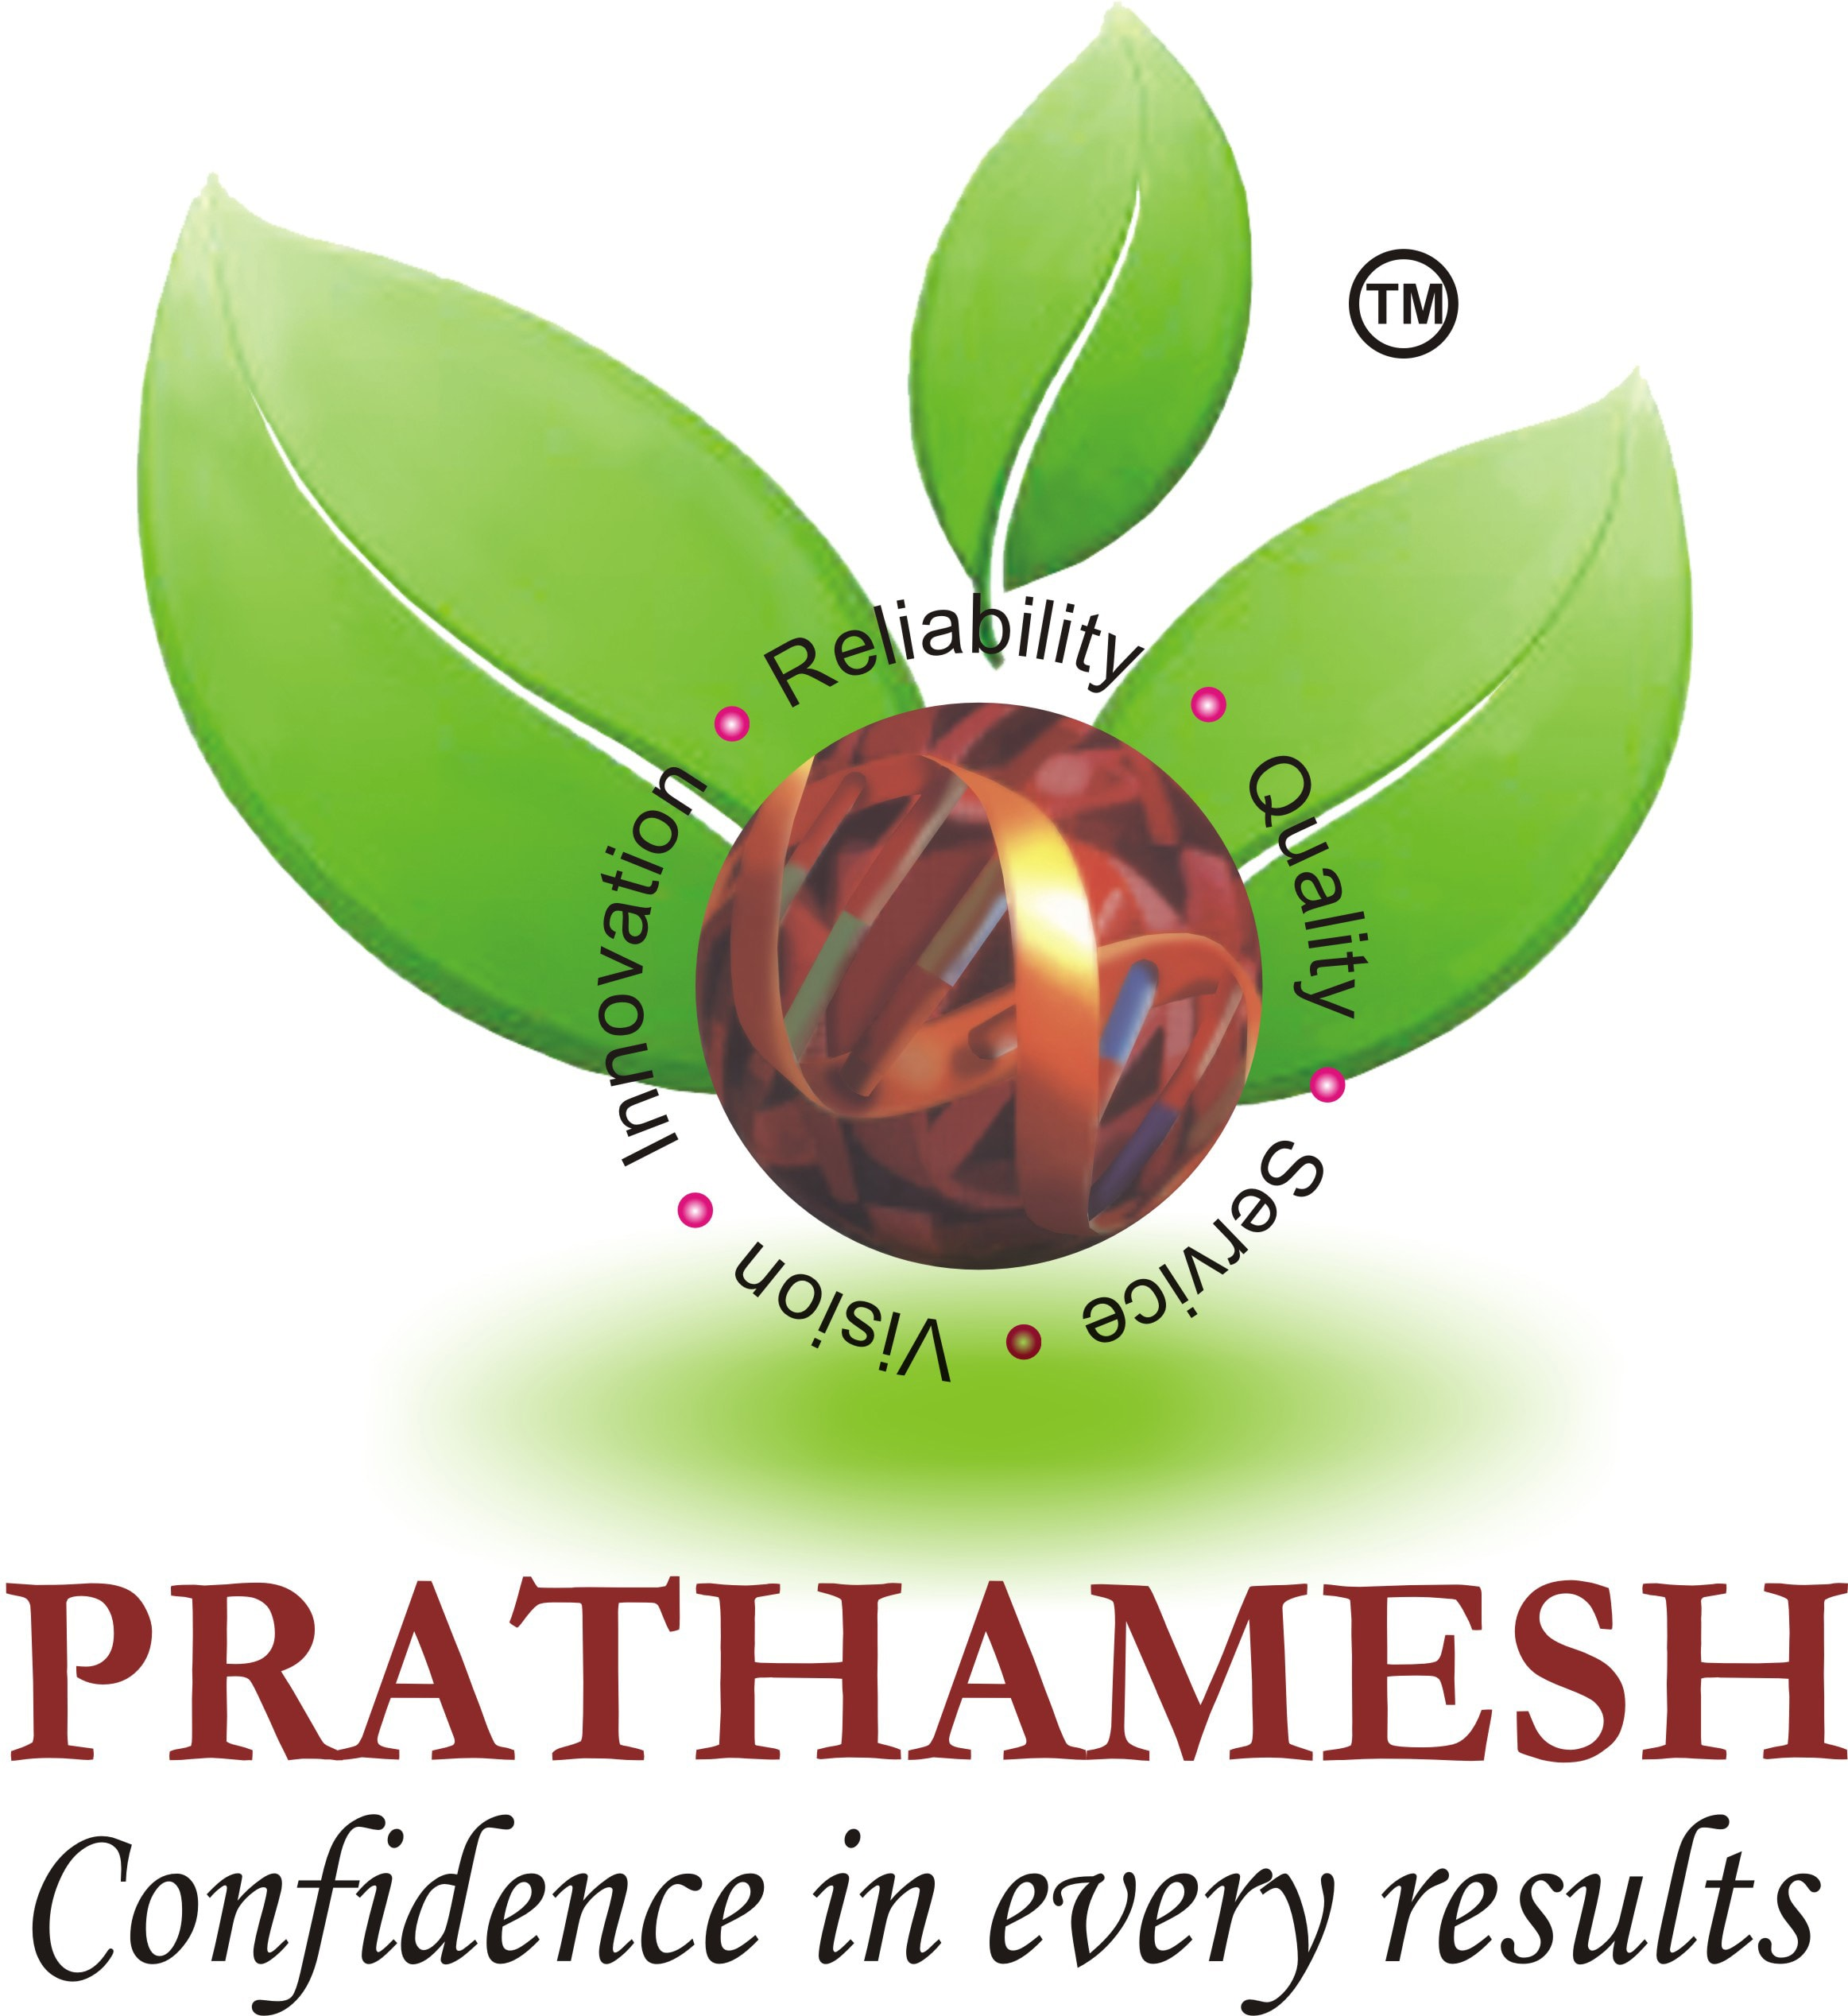 Prathamesh Advanced Diagnostics Private Limited